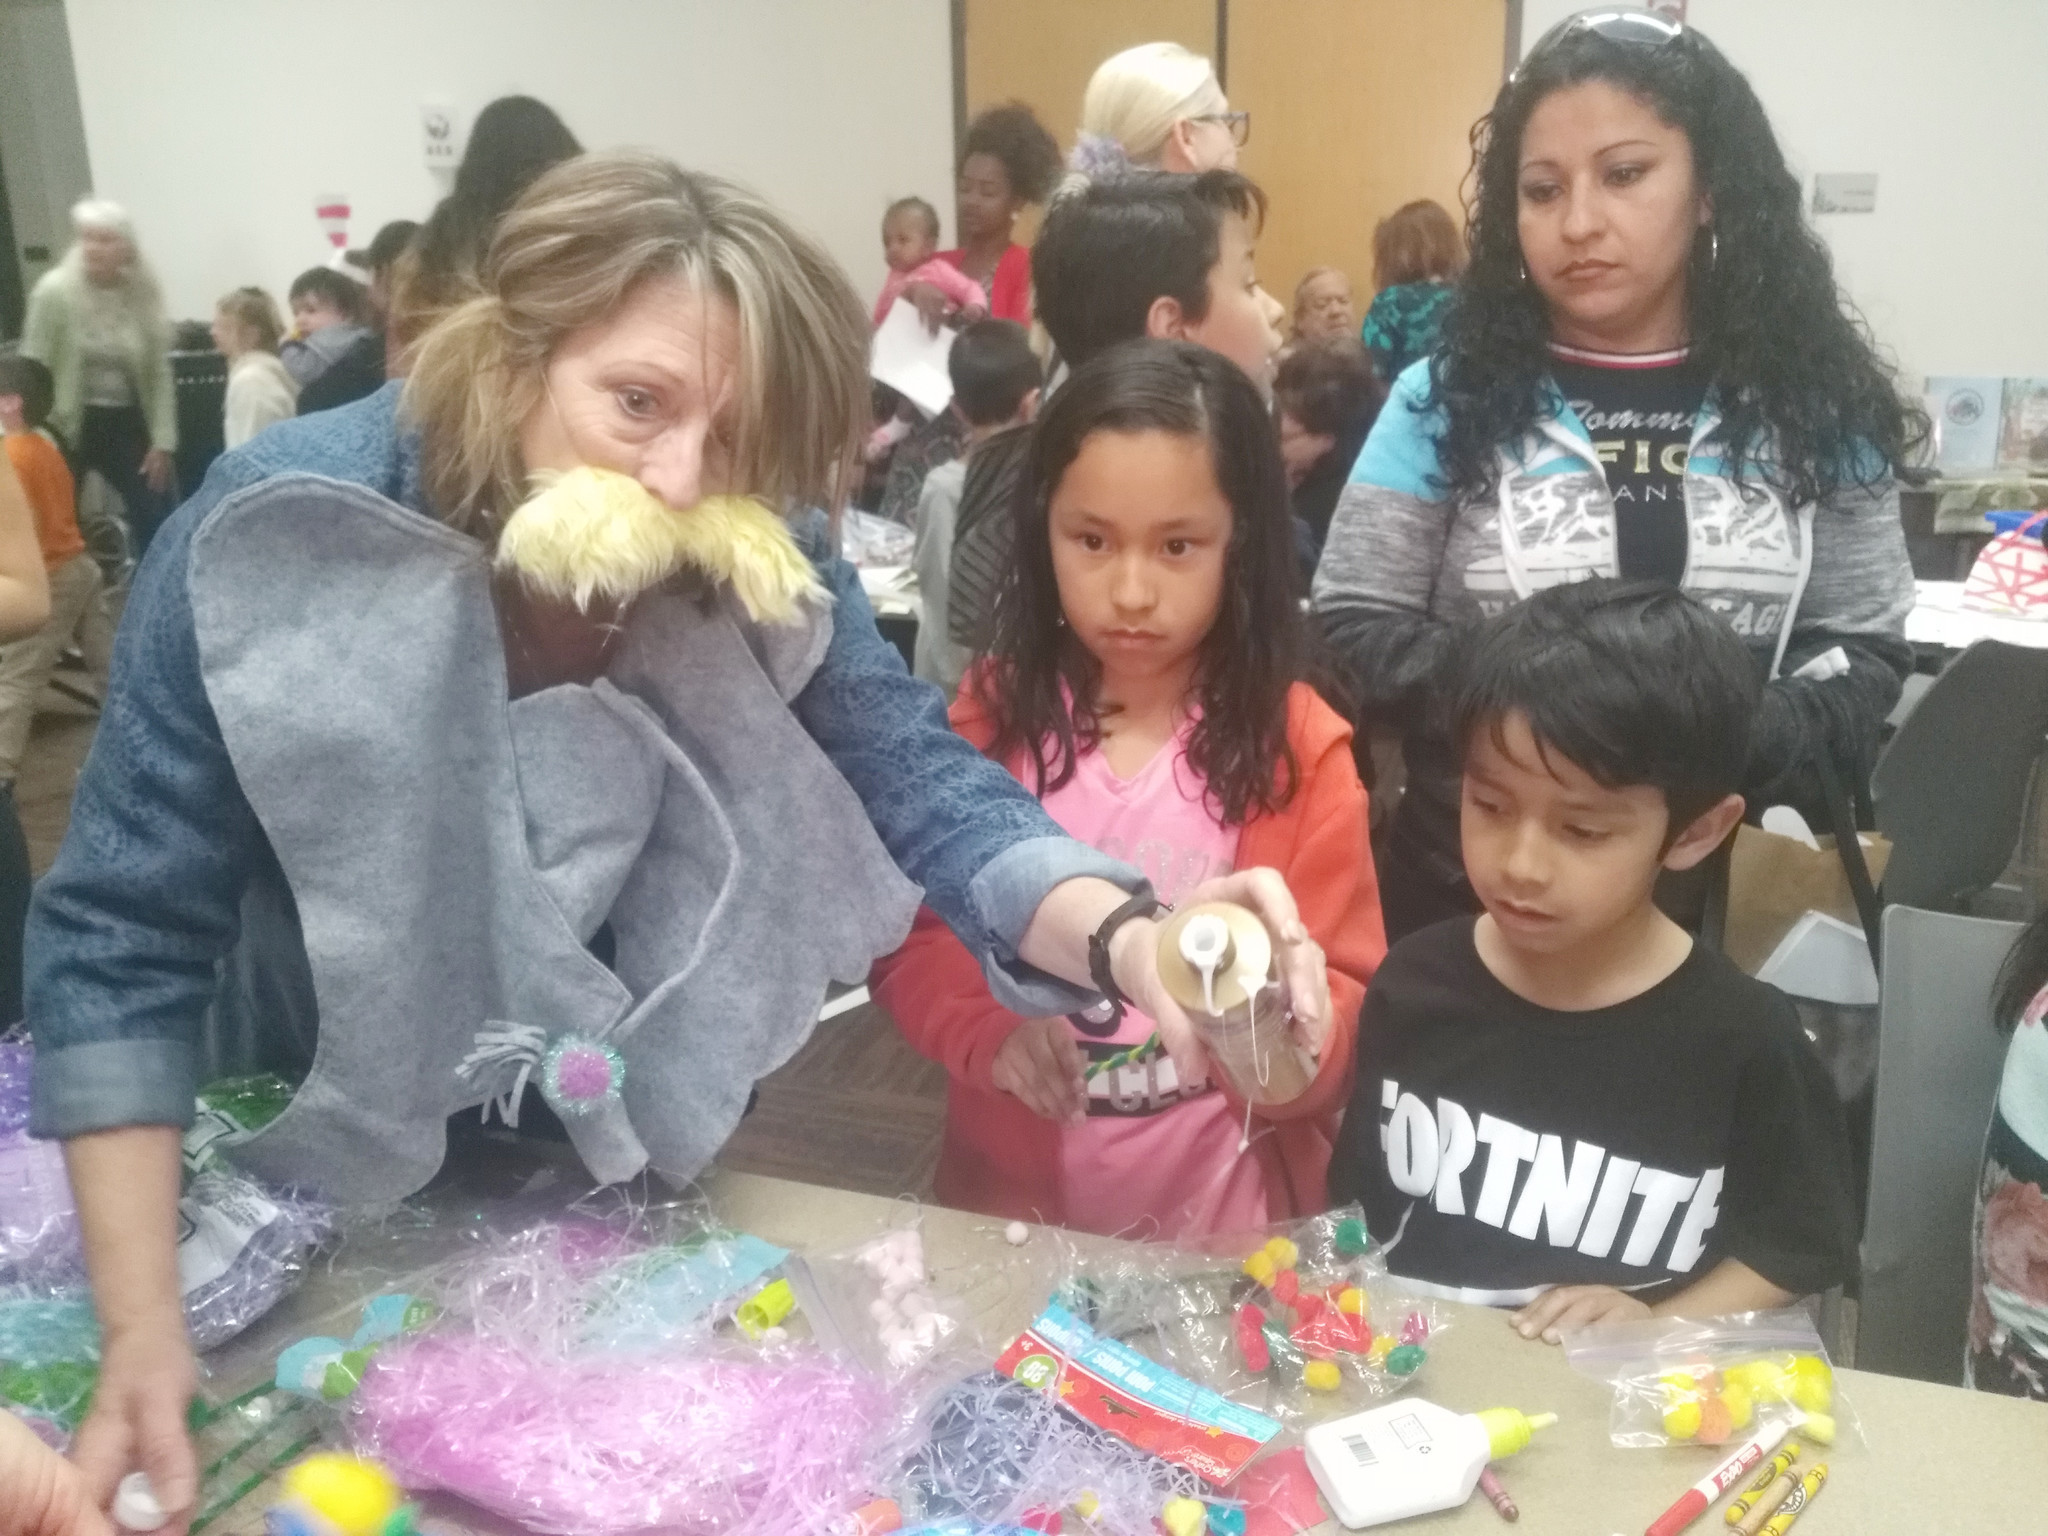 Iota Rho member Donna Braye-Romero, left, shows the Mendoza family how to assemble their crafts. In front are Jacqueline and Daniel, and behind are Marco and Eva.